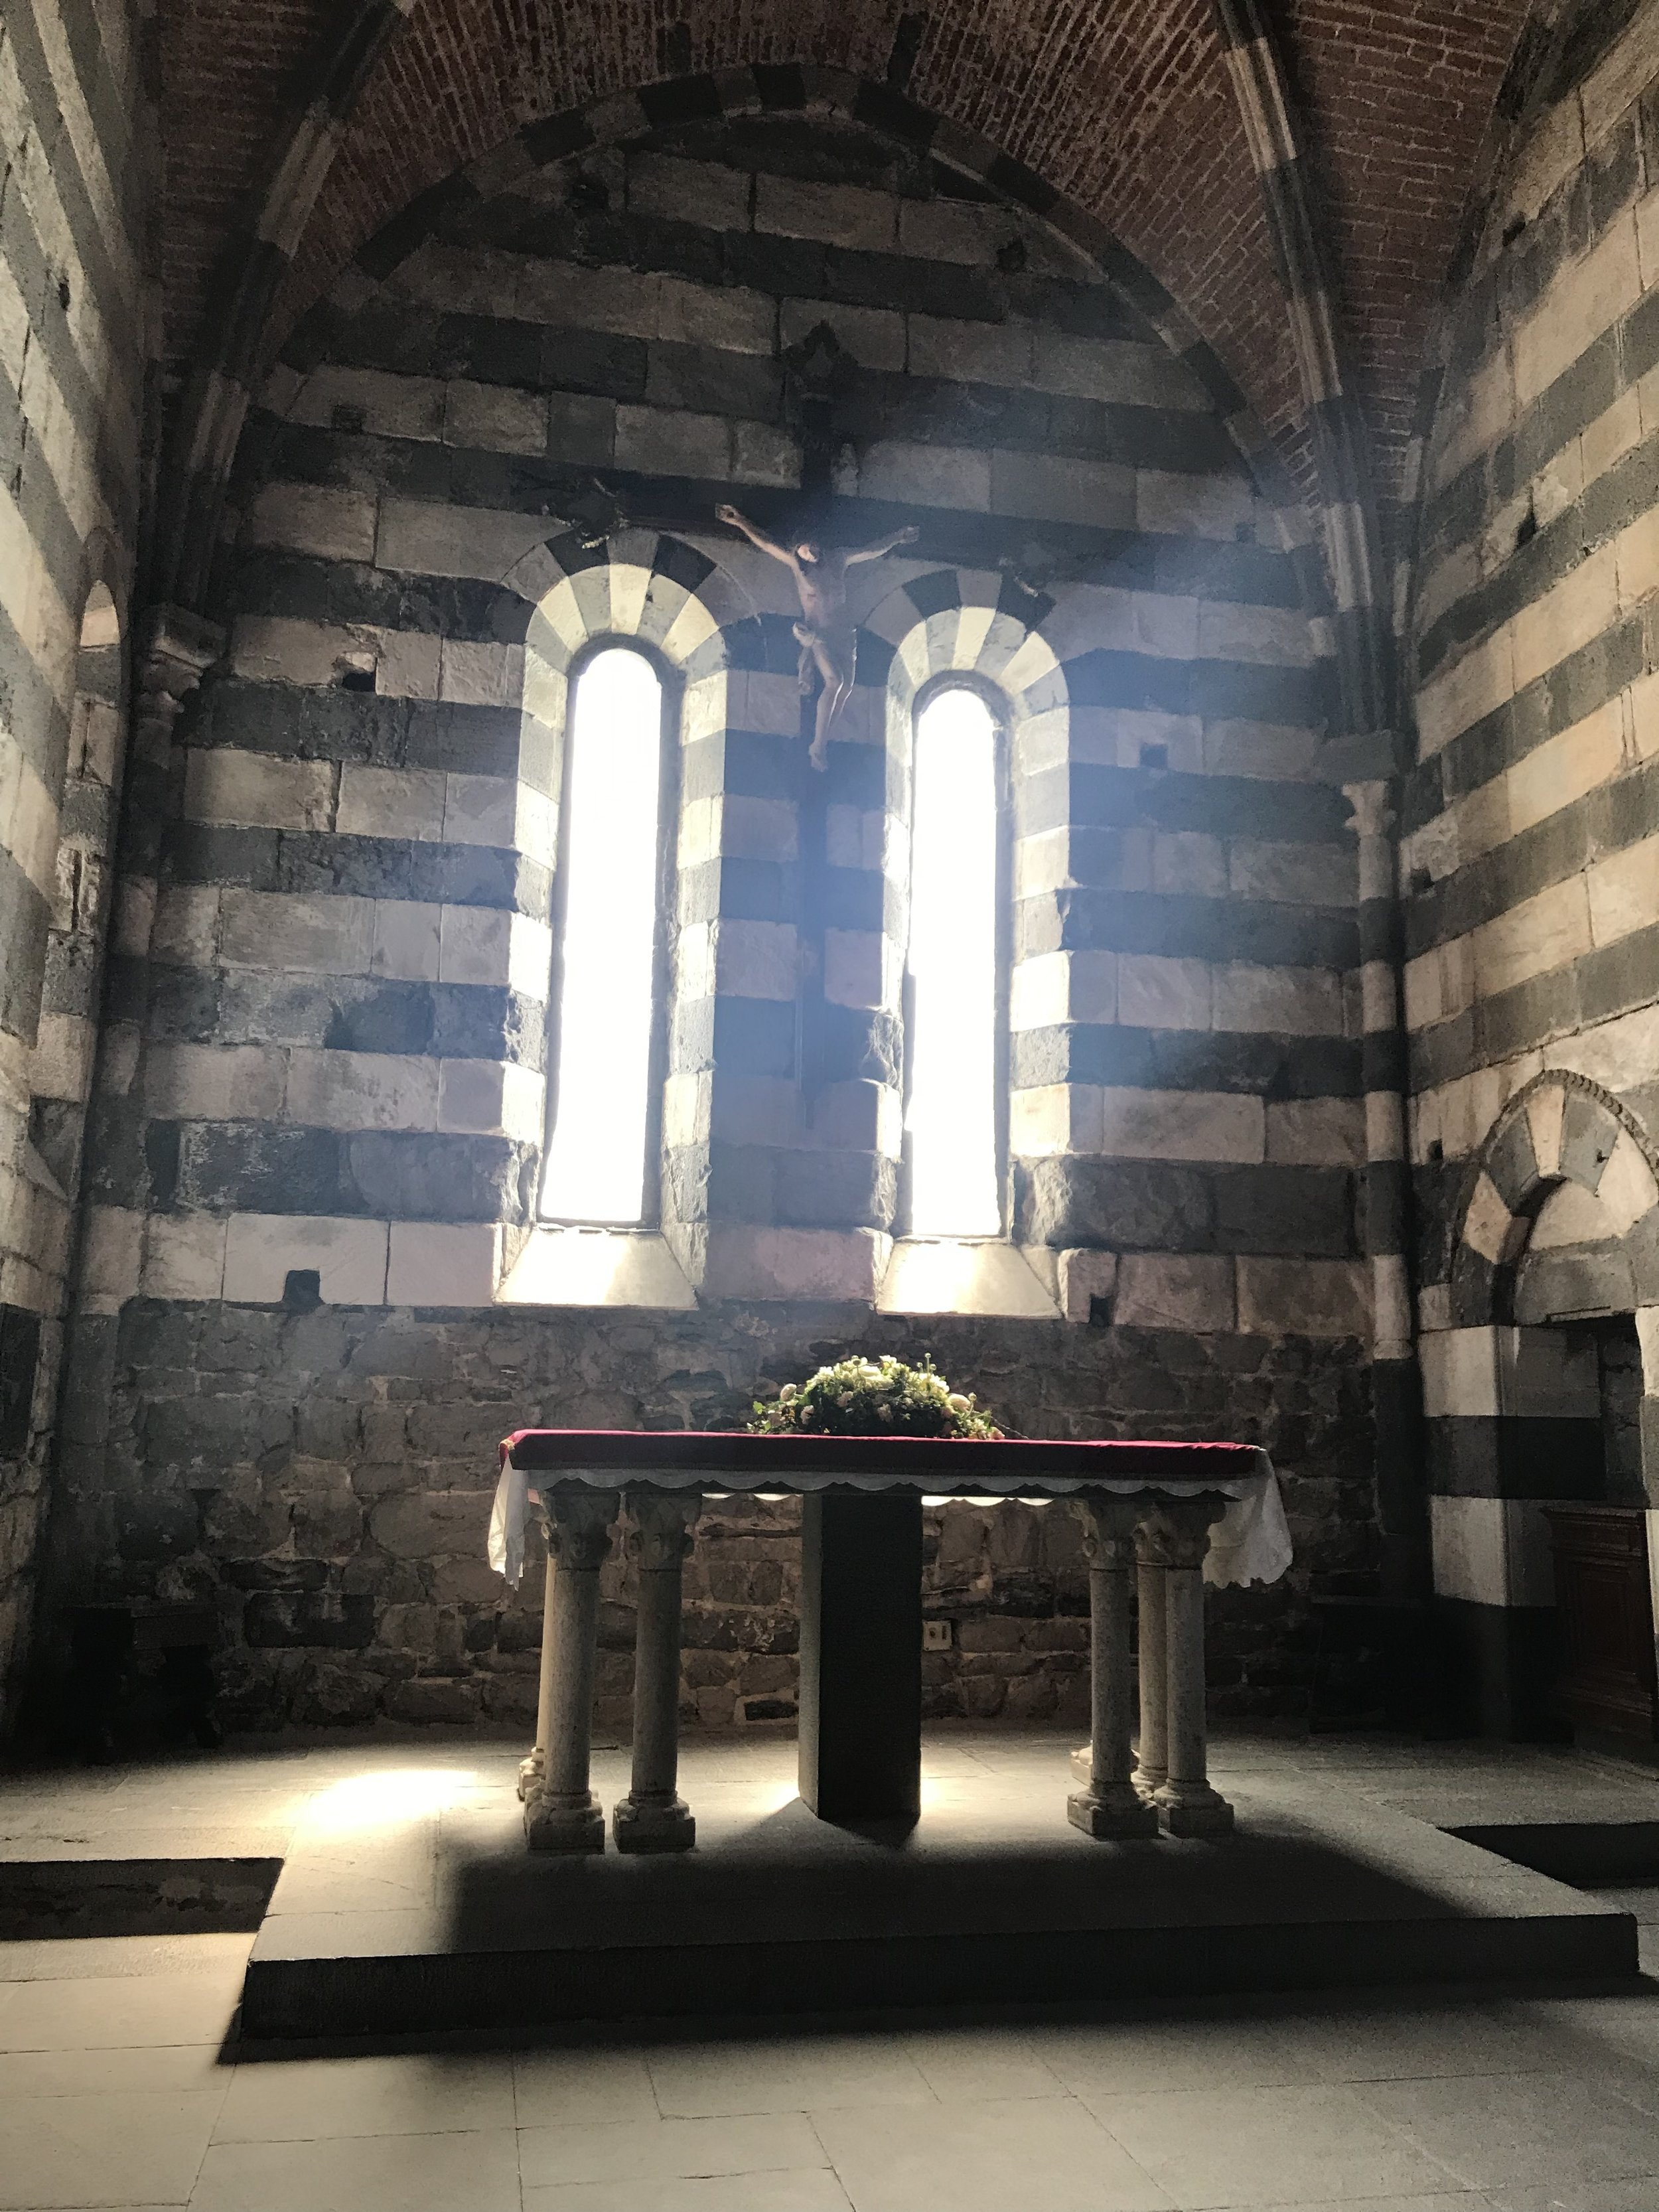 The altar inside the church at Portovenere.